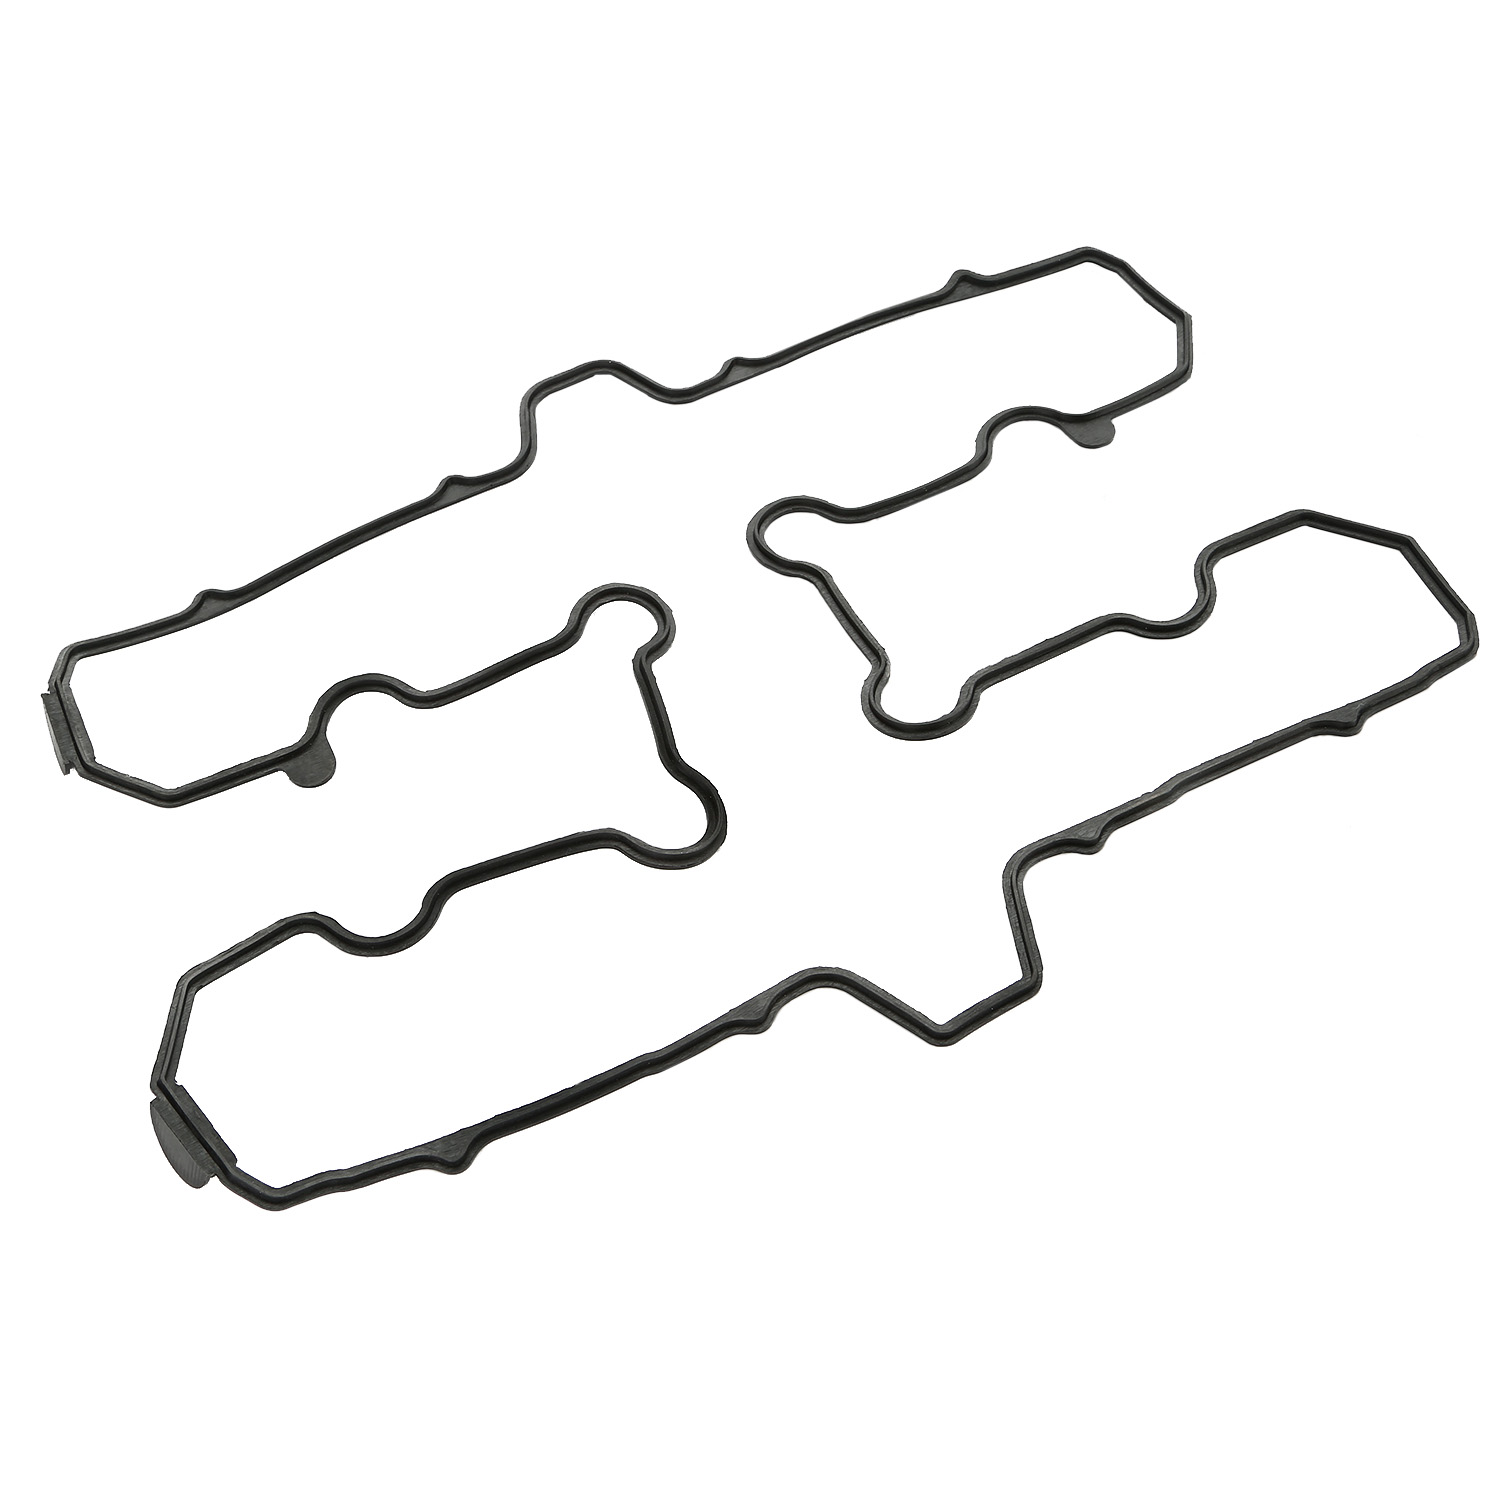 Rubber Gasket Head Cover For Yamaha XJR1200 XJR1300 FJ1100